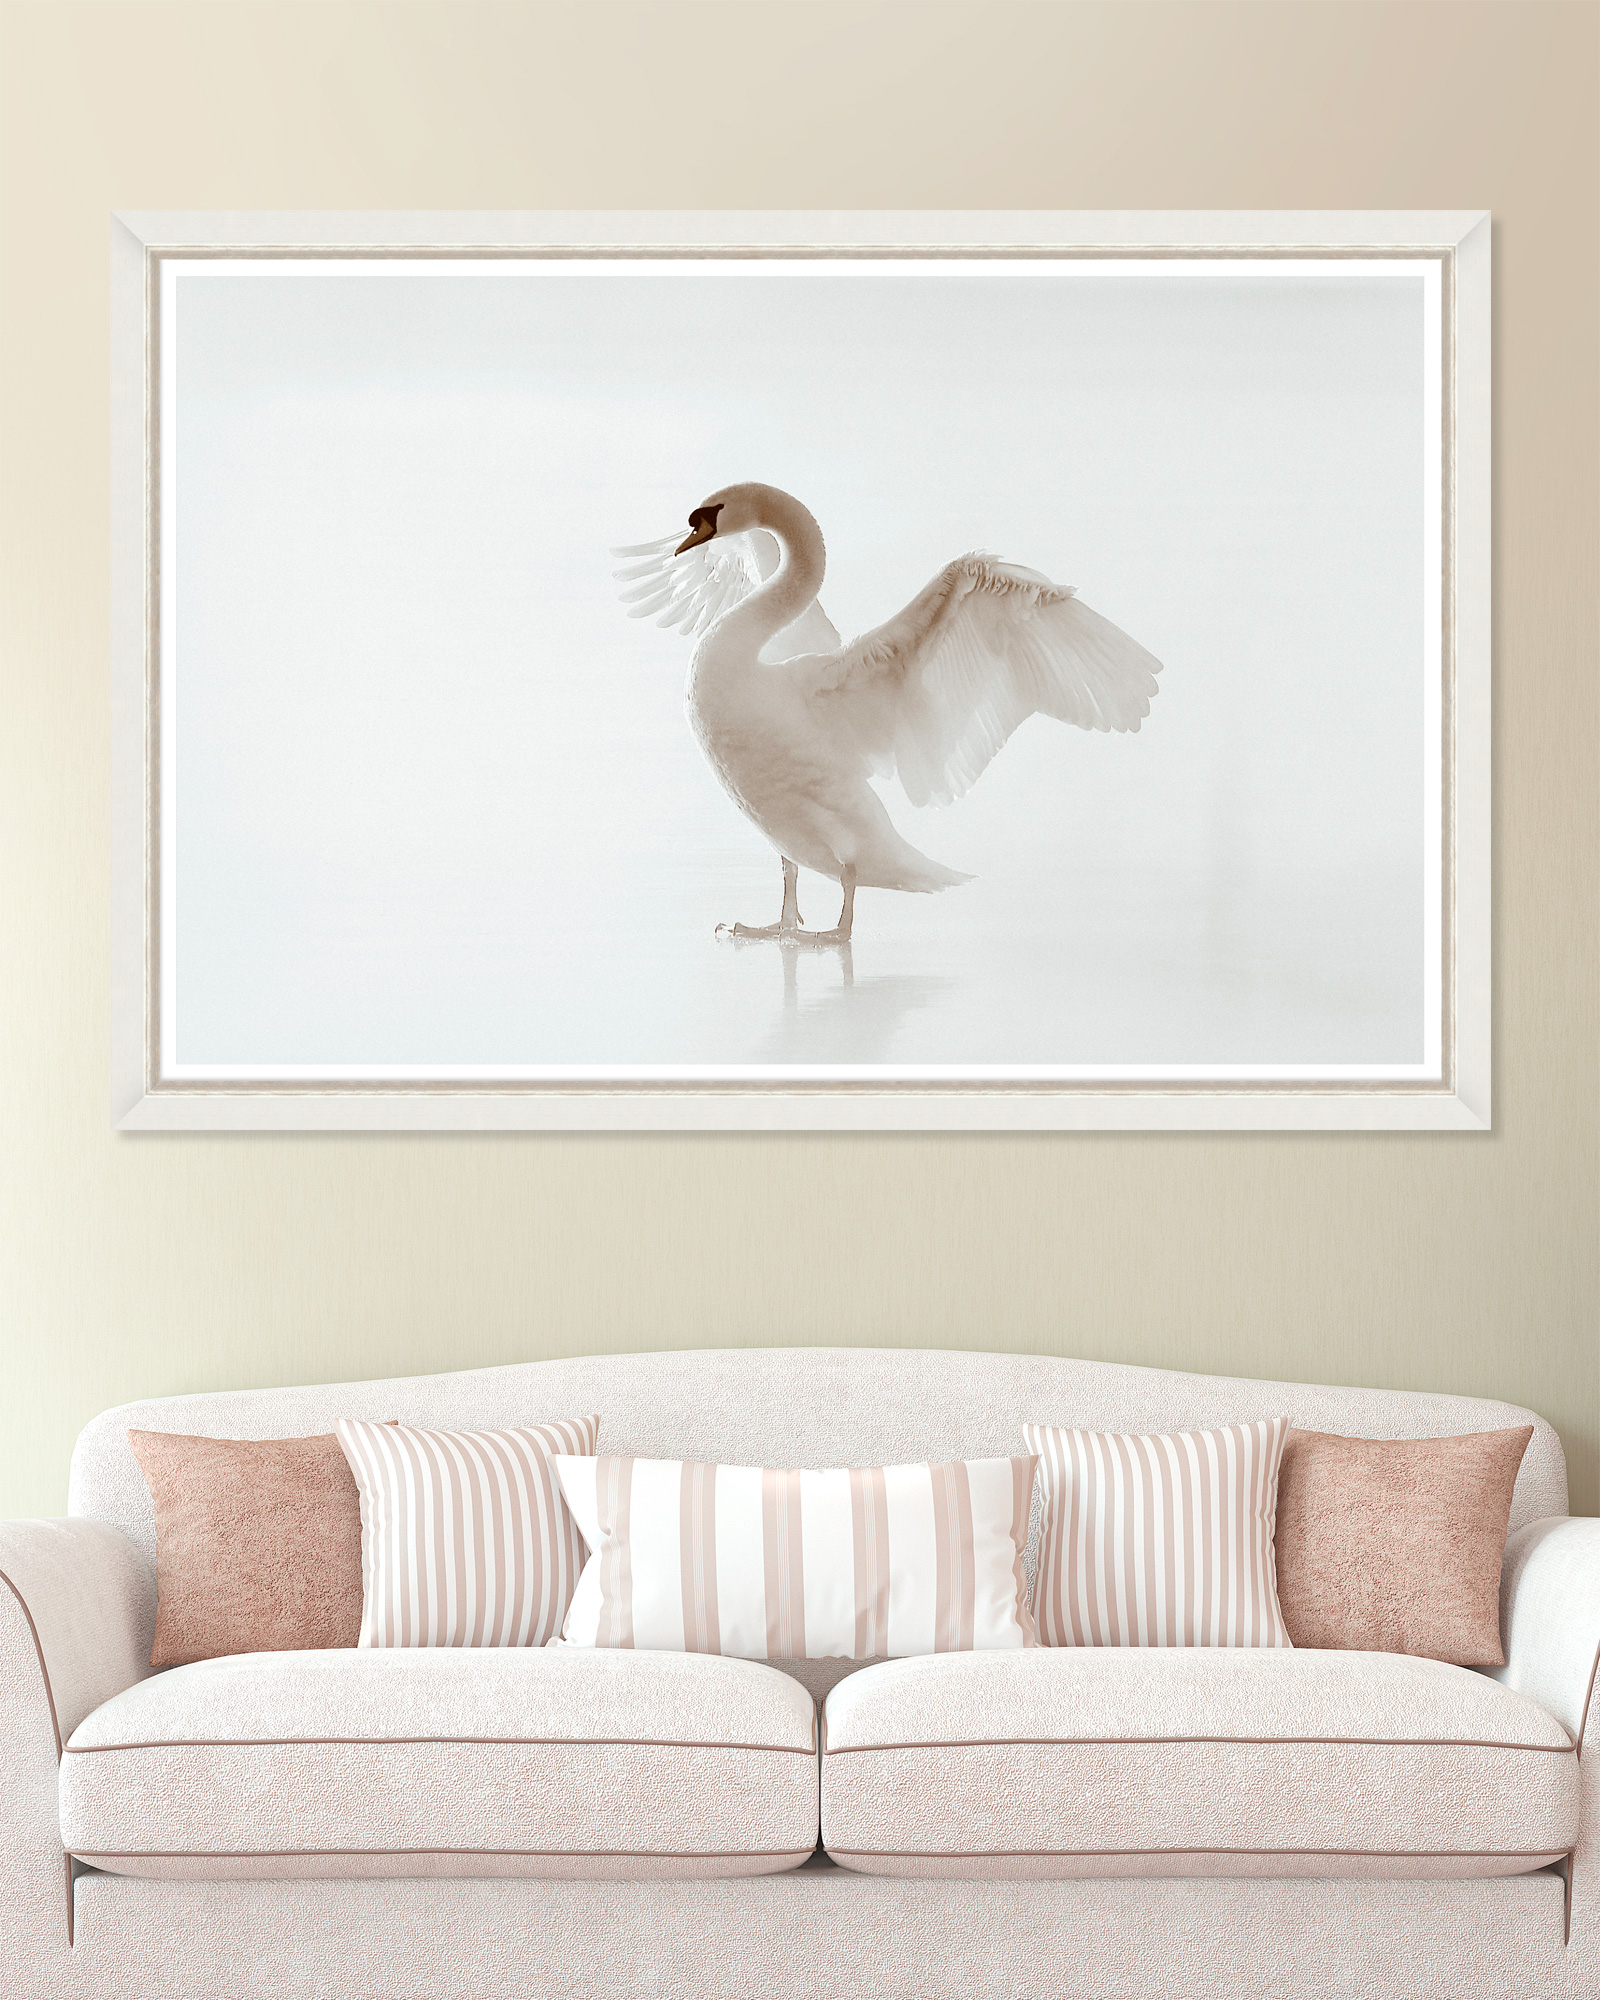 Tablou Framed Art White Beauty title=Tablou Framed Art White Beauty